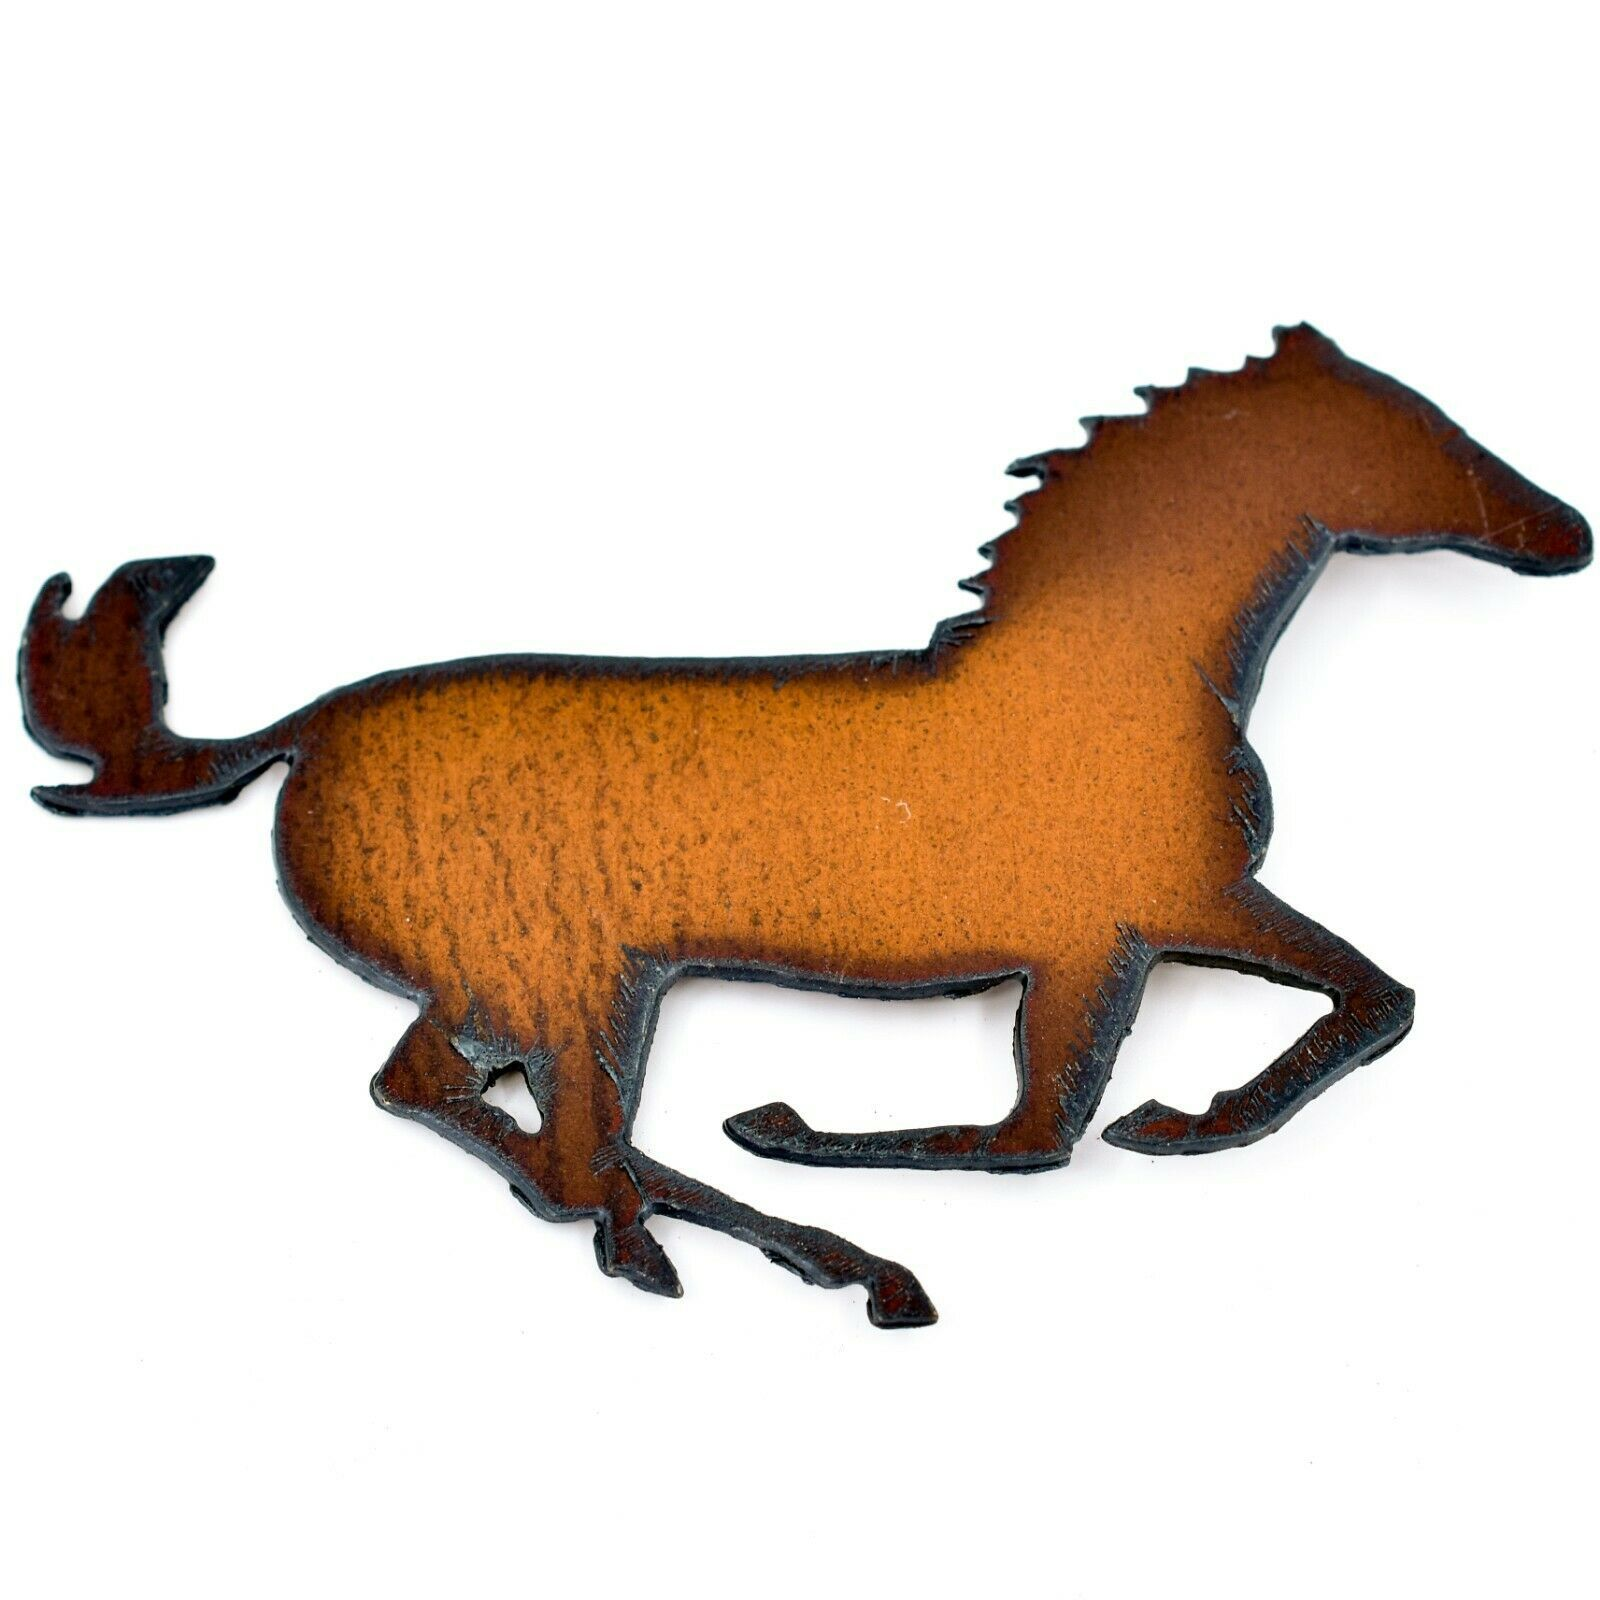 Rustic Country Western Rusted Patina Iron Metal Cutout Horse Refrigerator Magnet